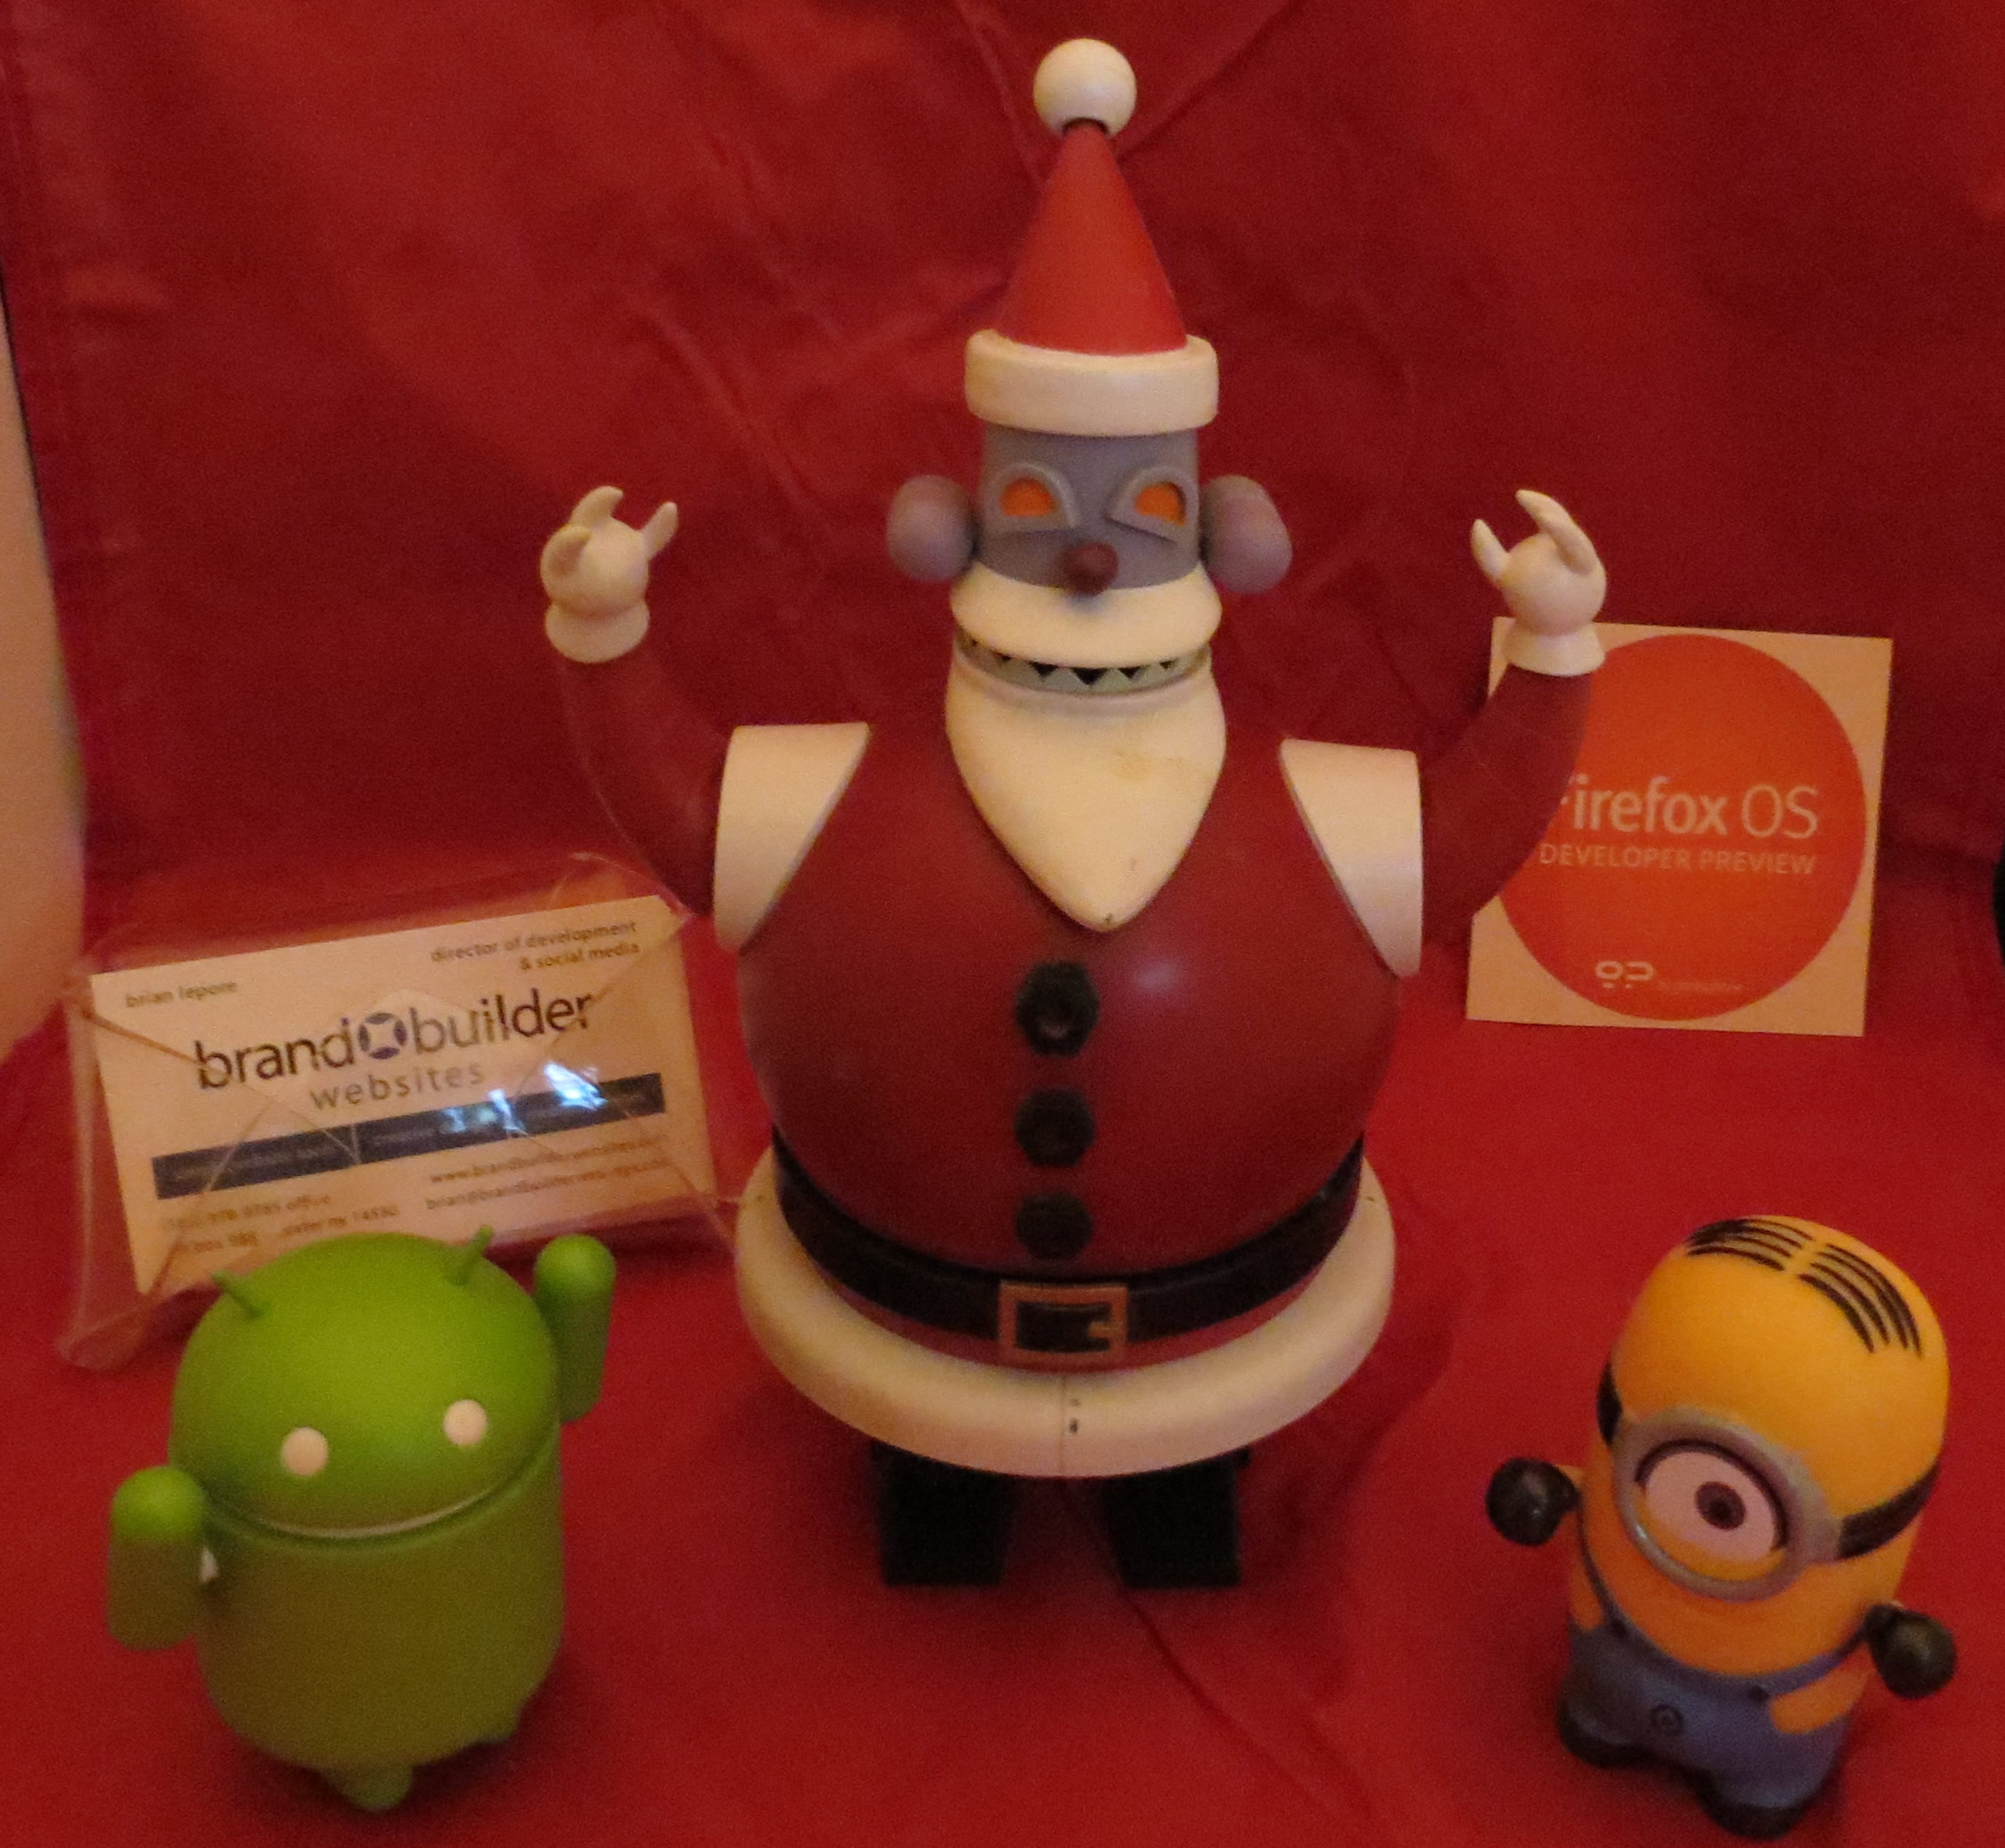 Robot Santa, Andy the Android, and Minion welcome Brand Builder Website's tech gift ideas.